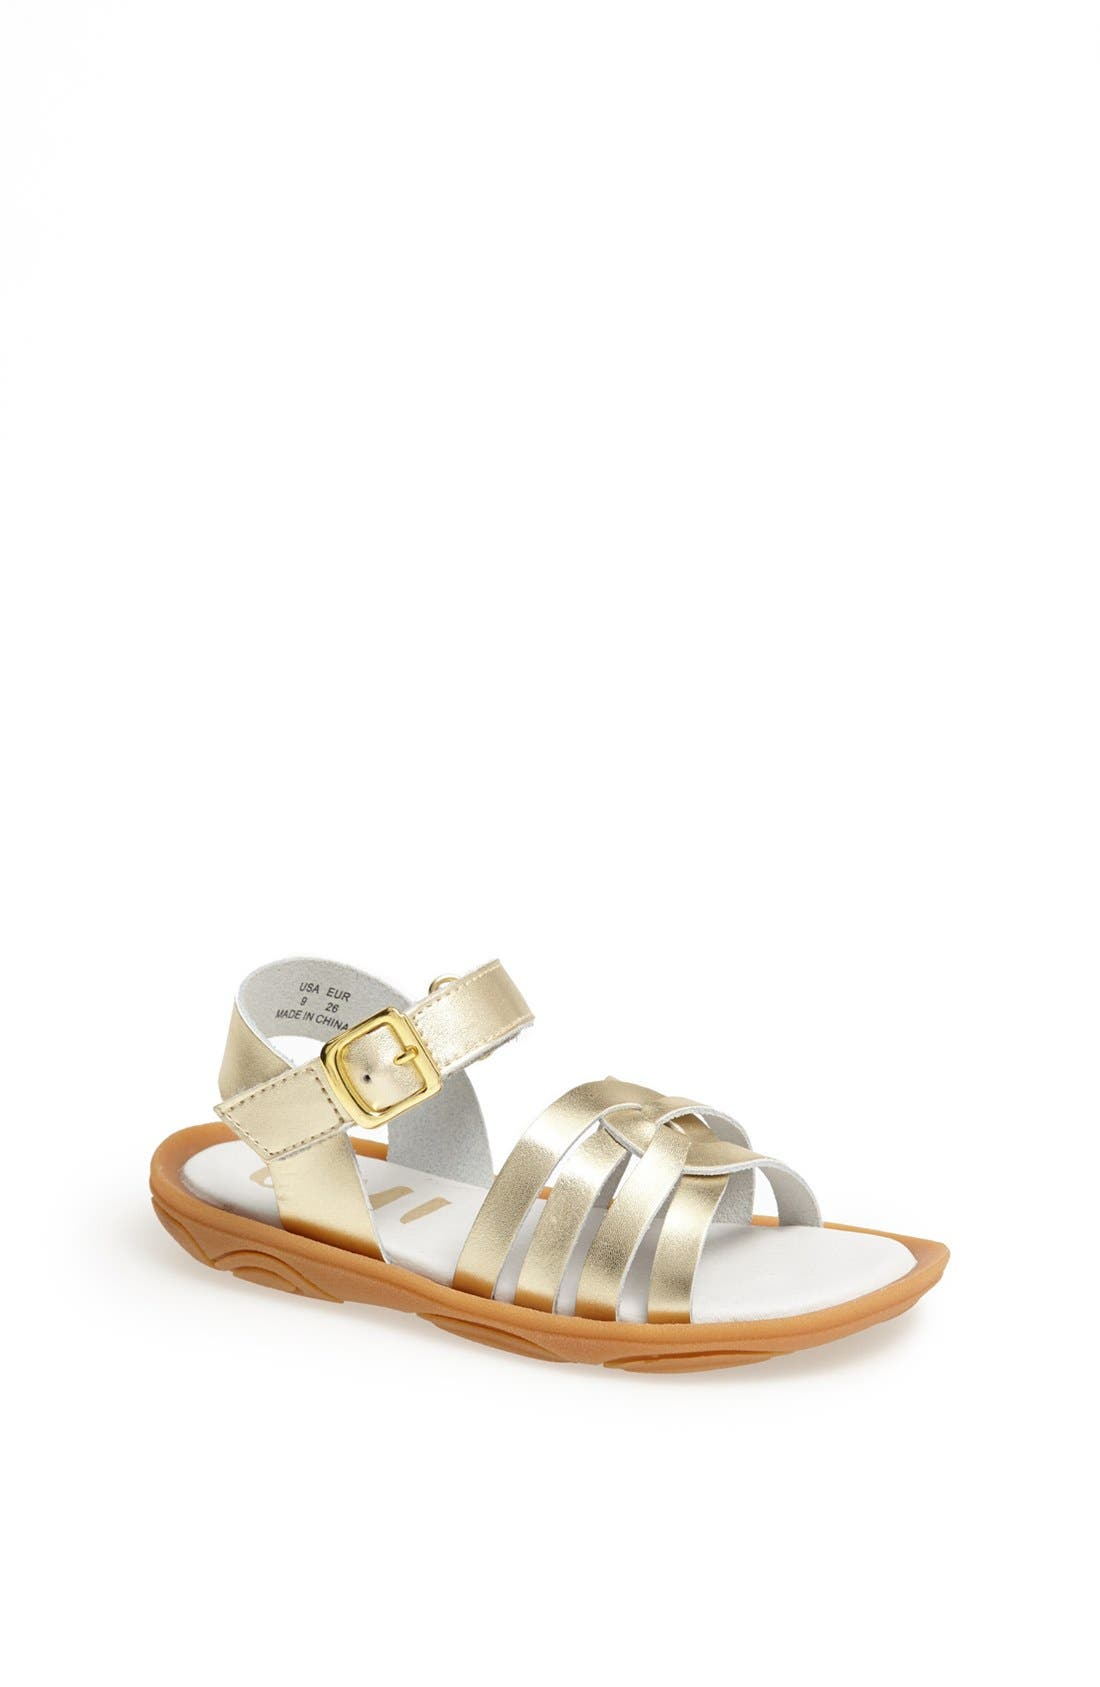 Alternate Image 1 Selected - Umi 'Cora' Ankle Strap Sandal (Walker, Toddler & Little Kid)